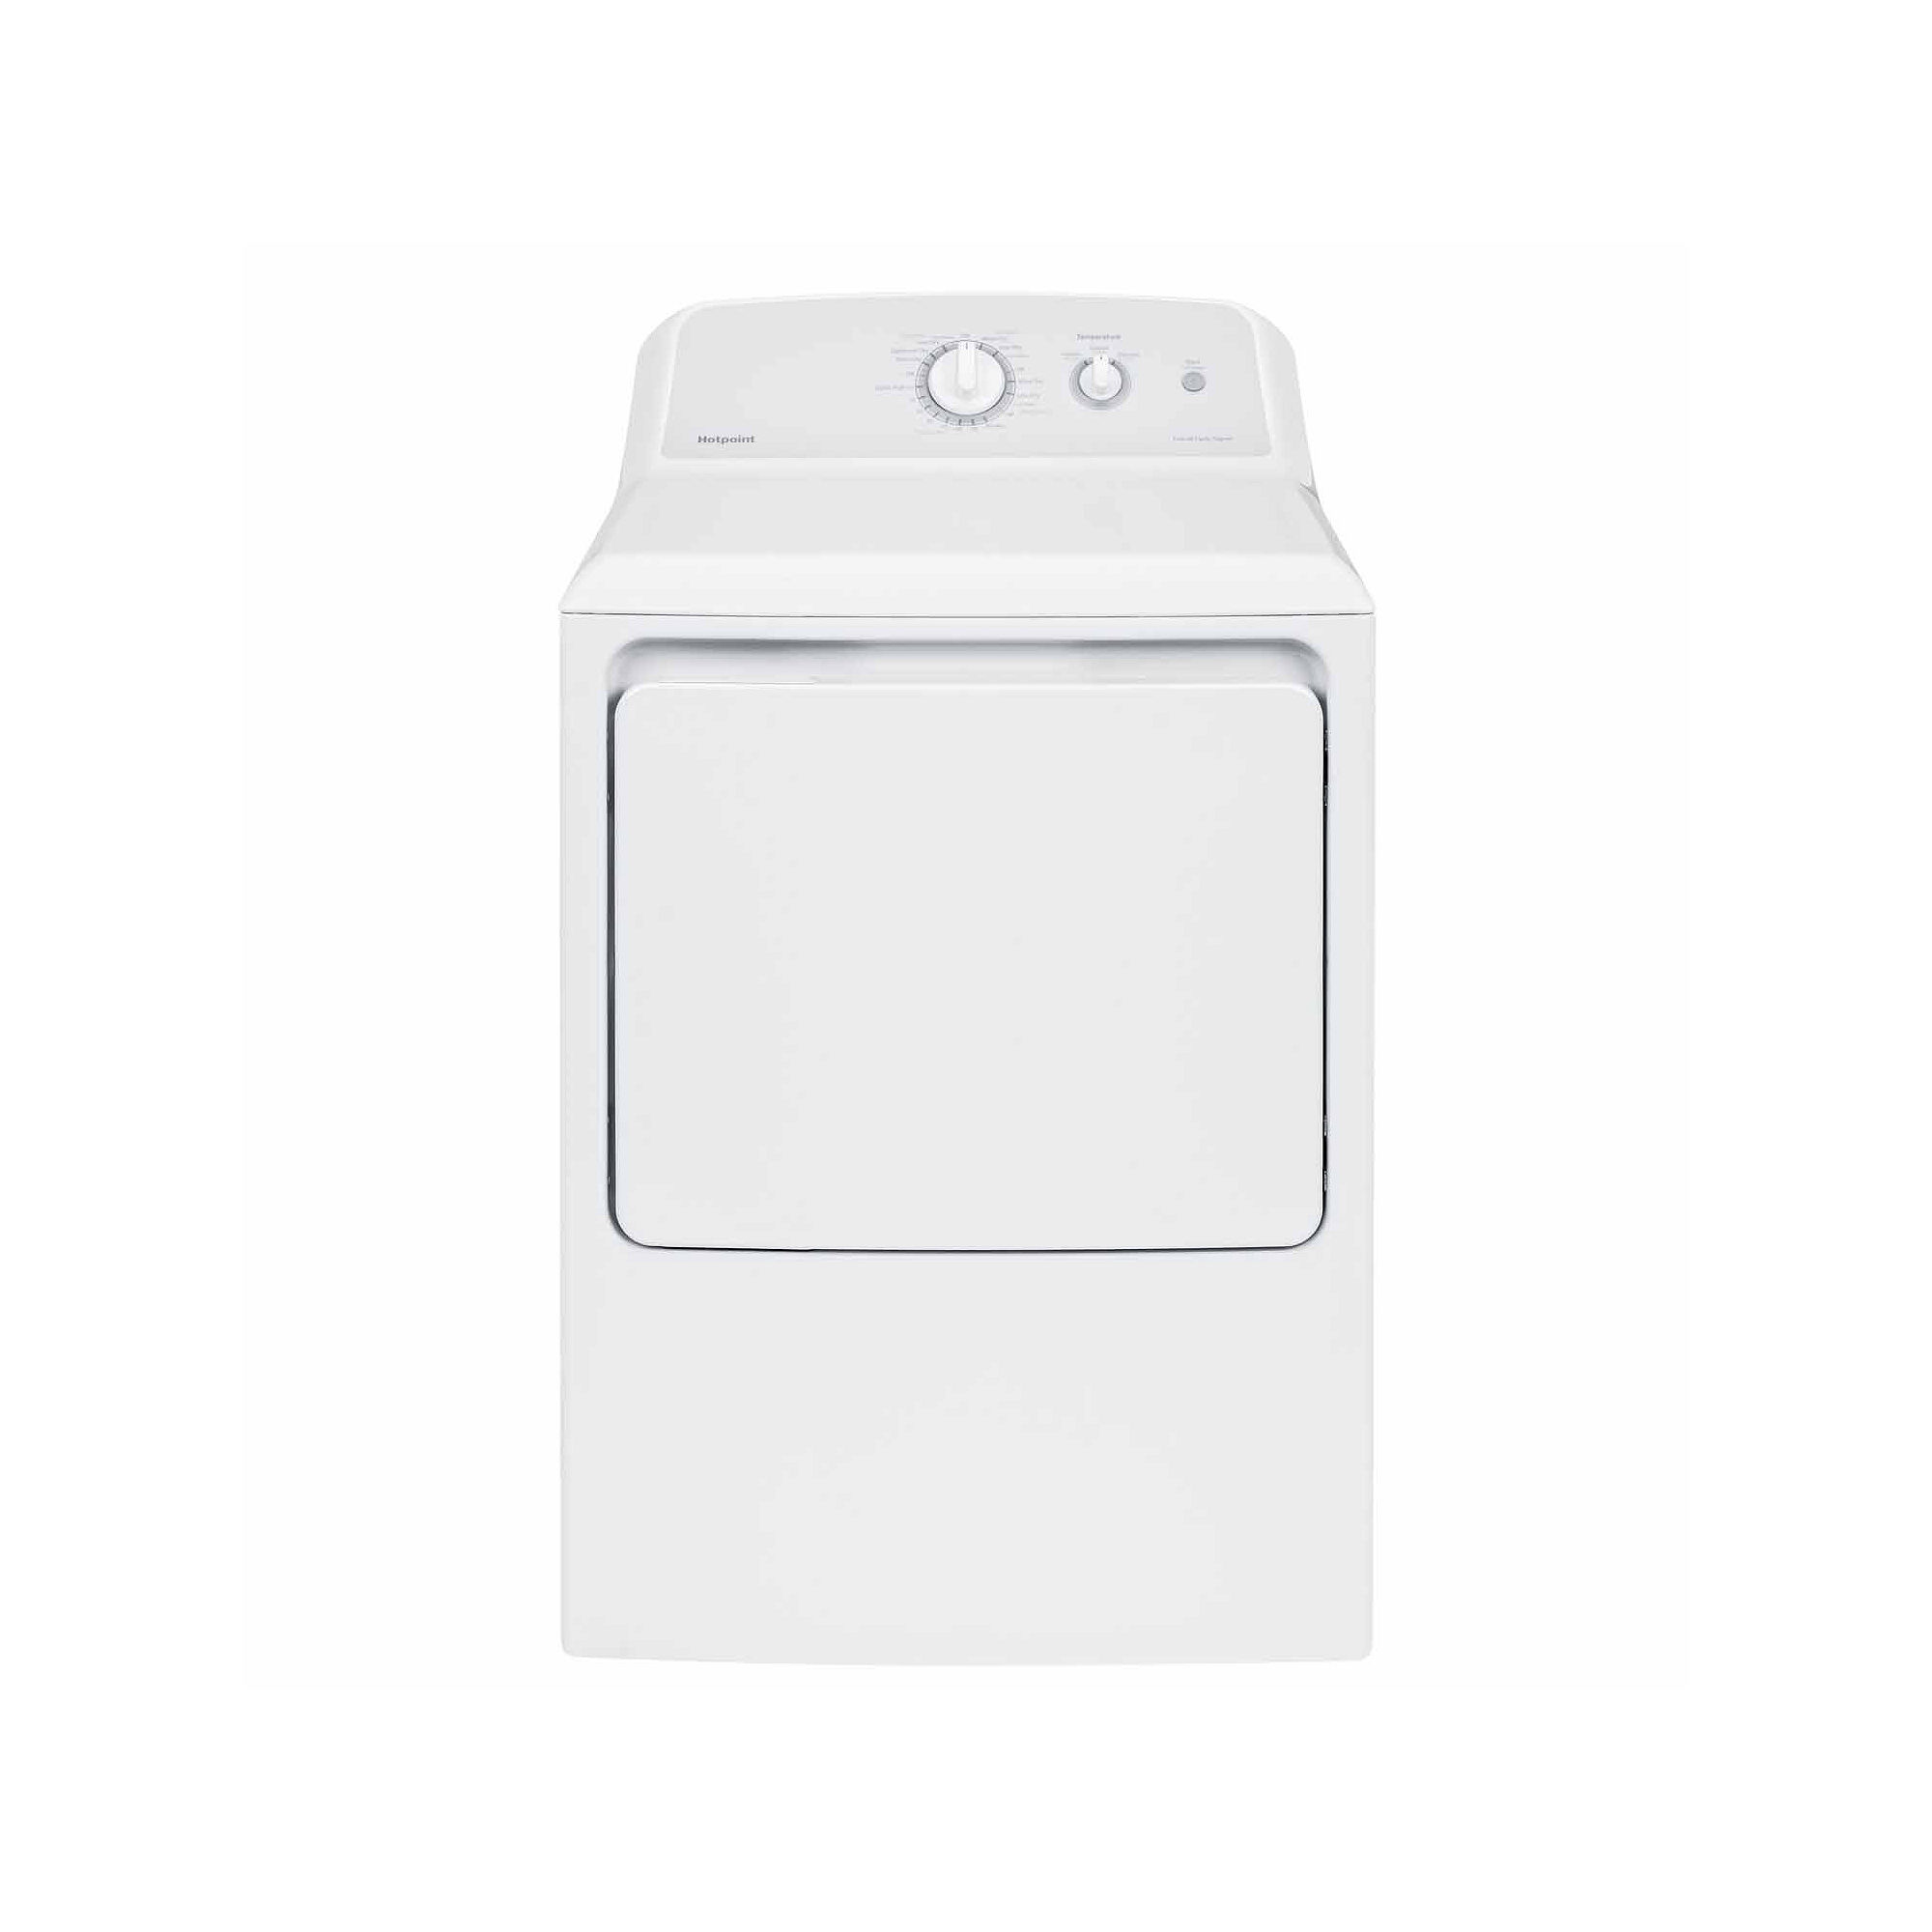 Hotpoint 6.2 cu. ft. Capacity Aluminized Alloy Electric Dryer - HTX24EASKWS